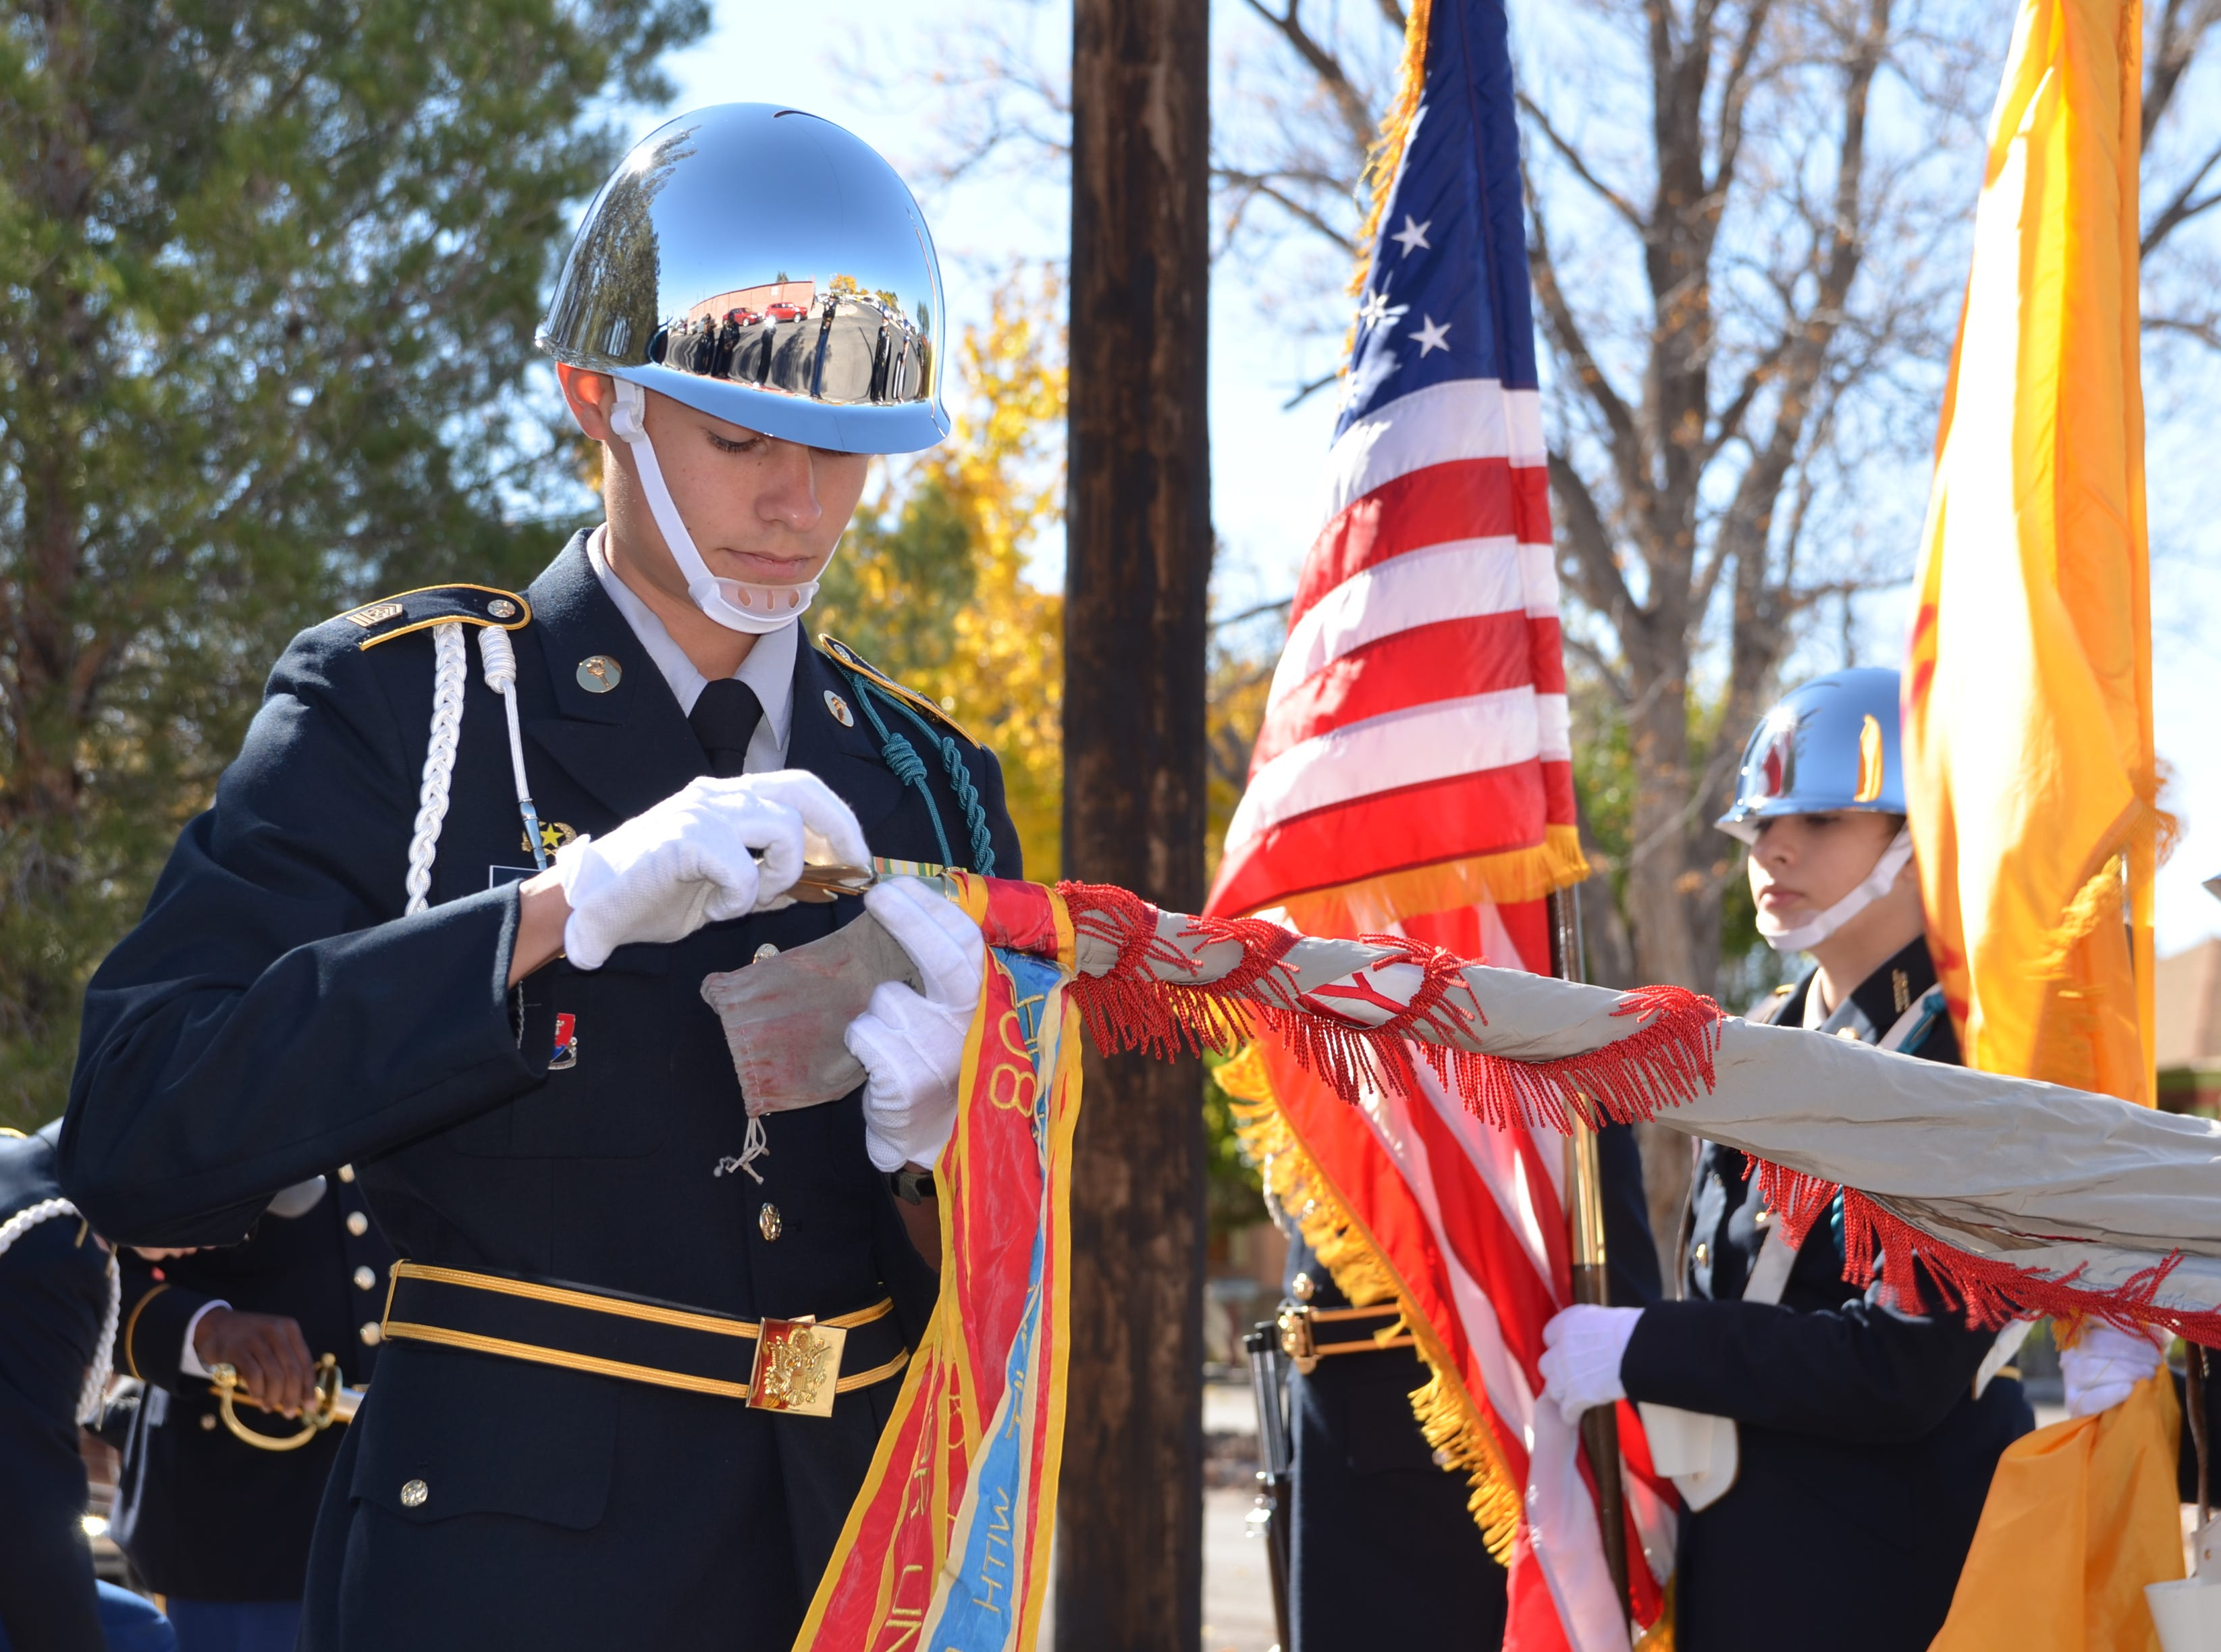 John Denning, 16, A junior at Deming High School and commander of DHS Color Guard unrolls the Deming High ROTC flag.